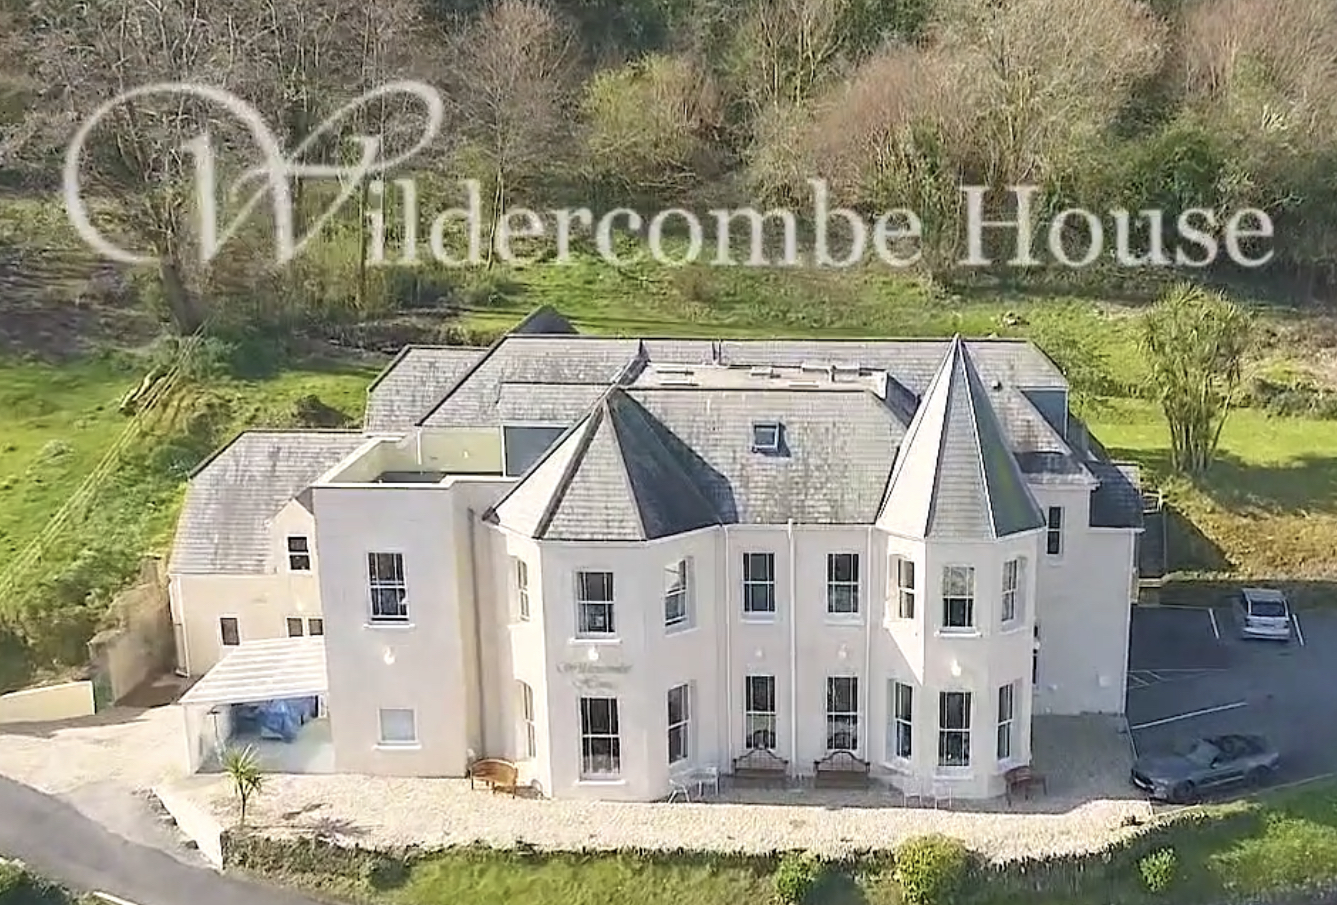 wildercombe house